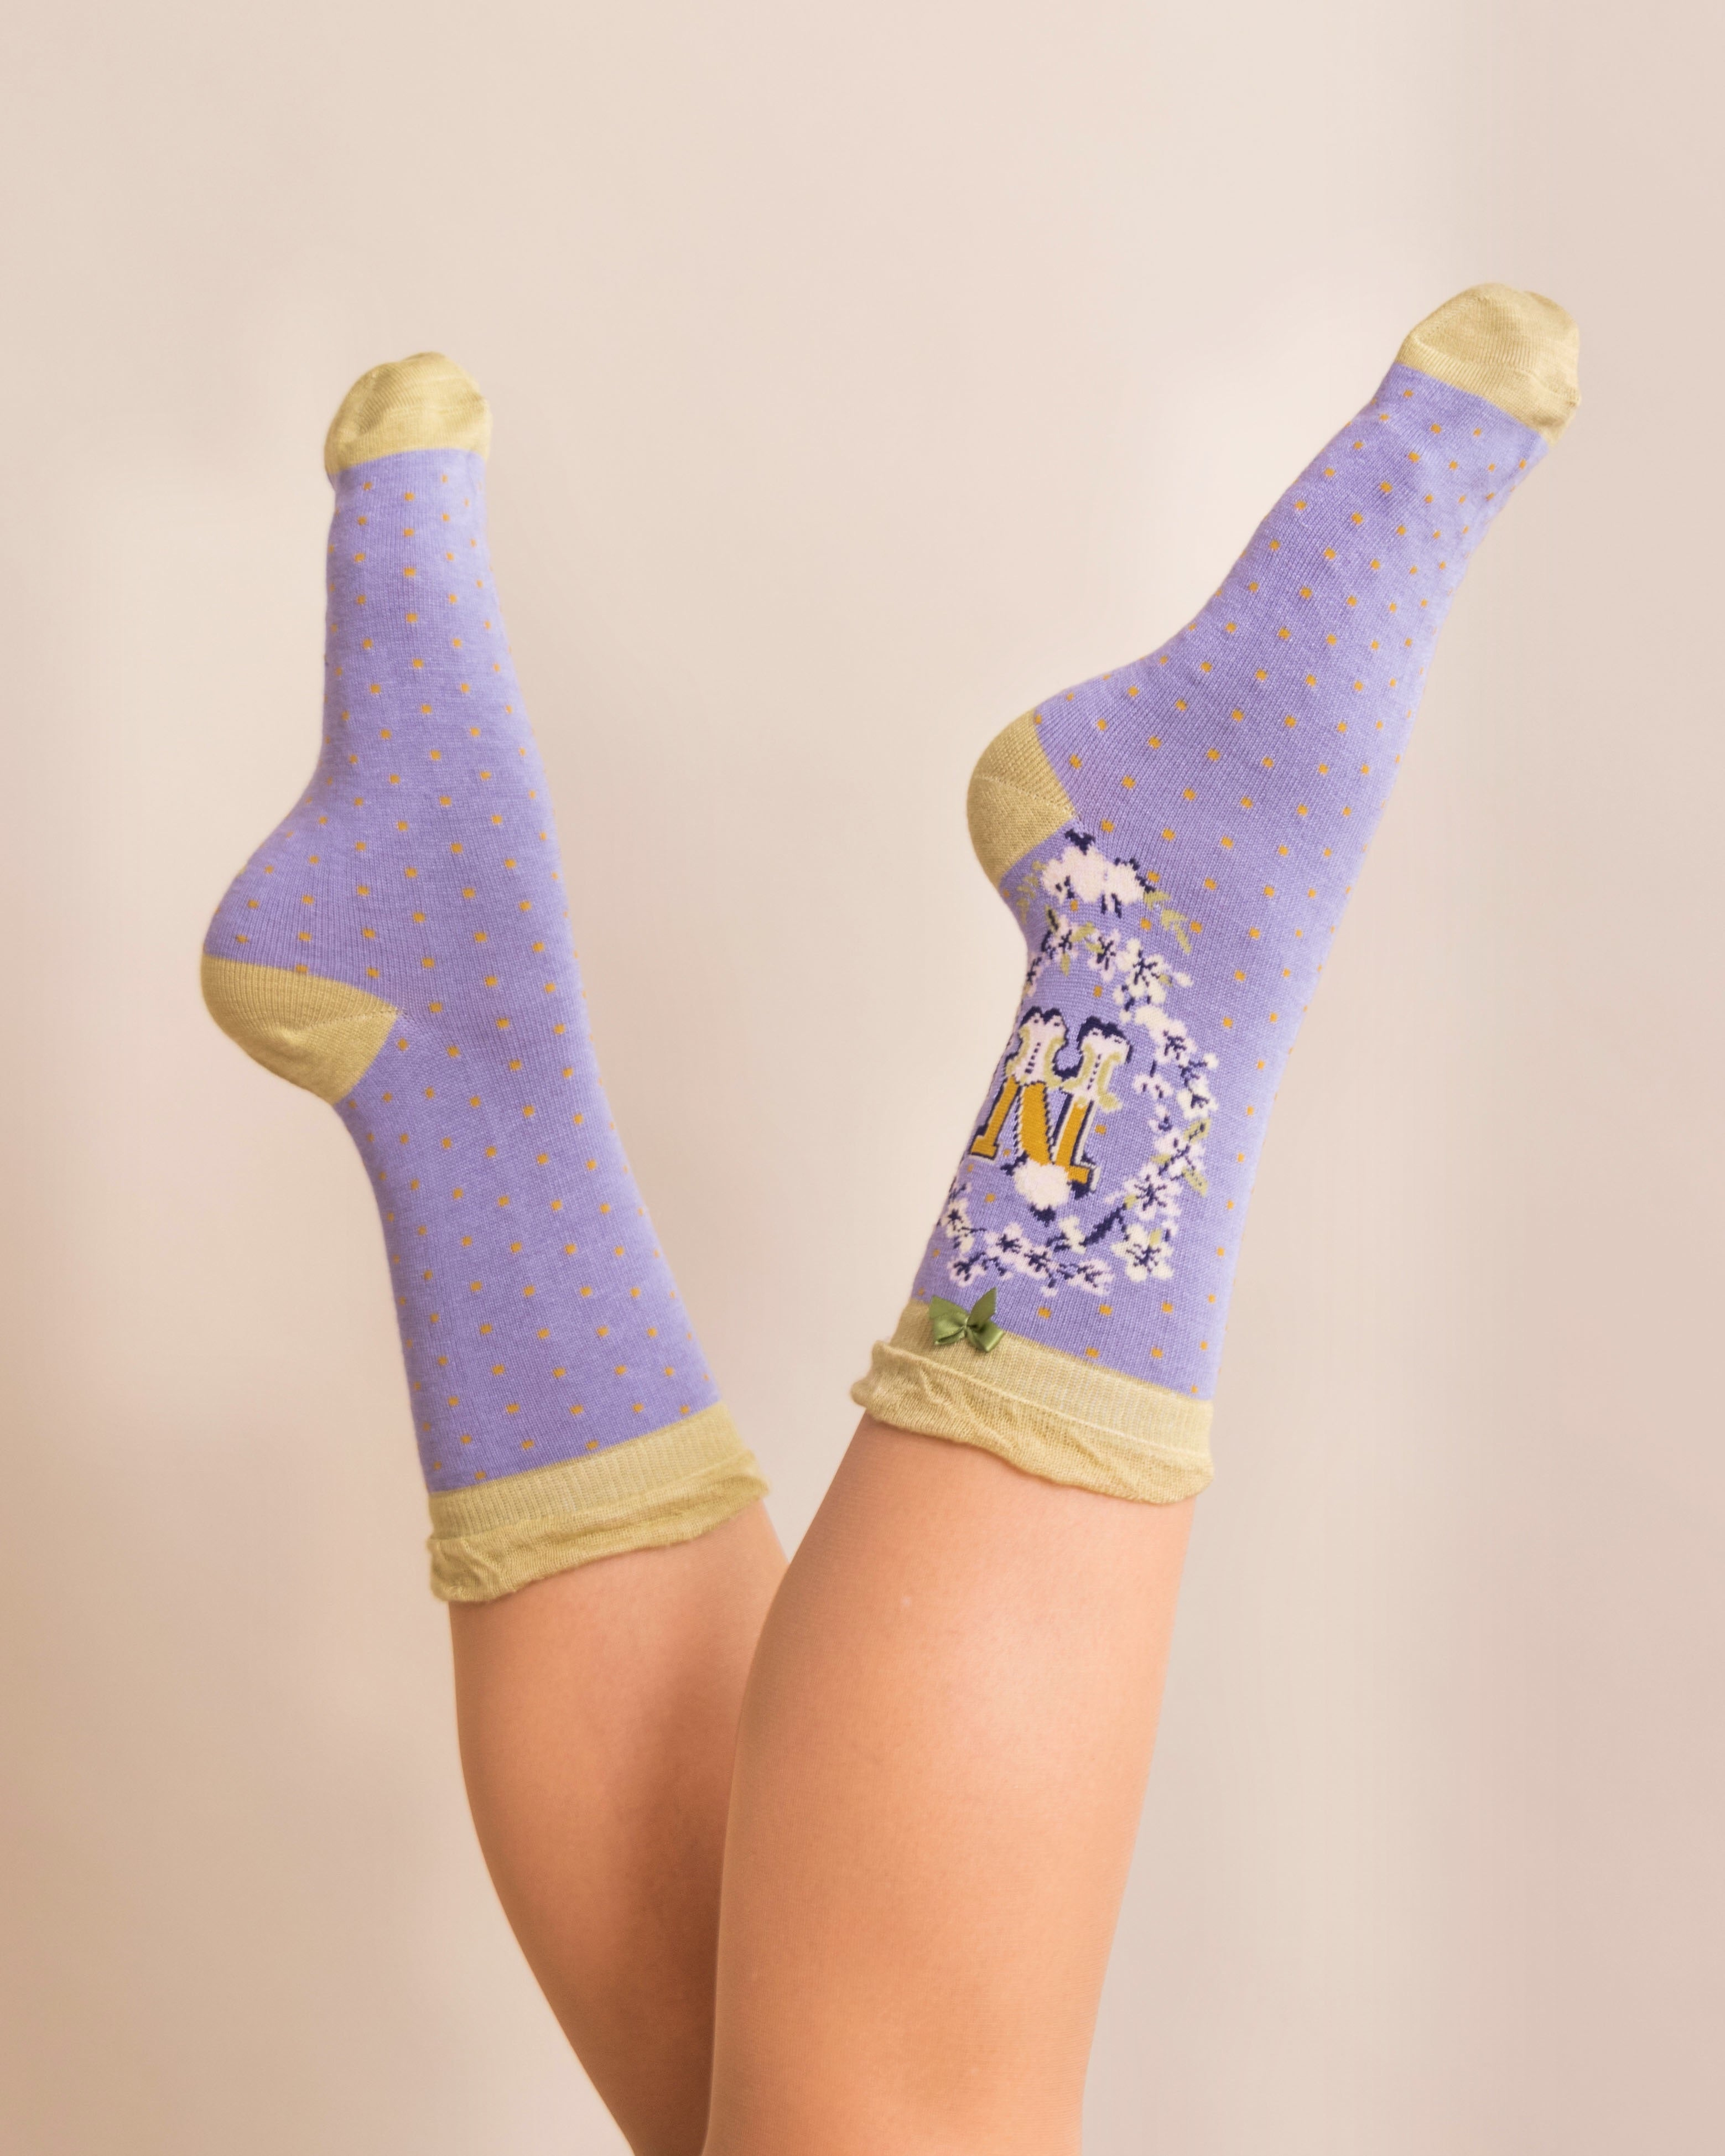 Powder Alphabet Socks - Letter N